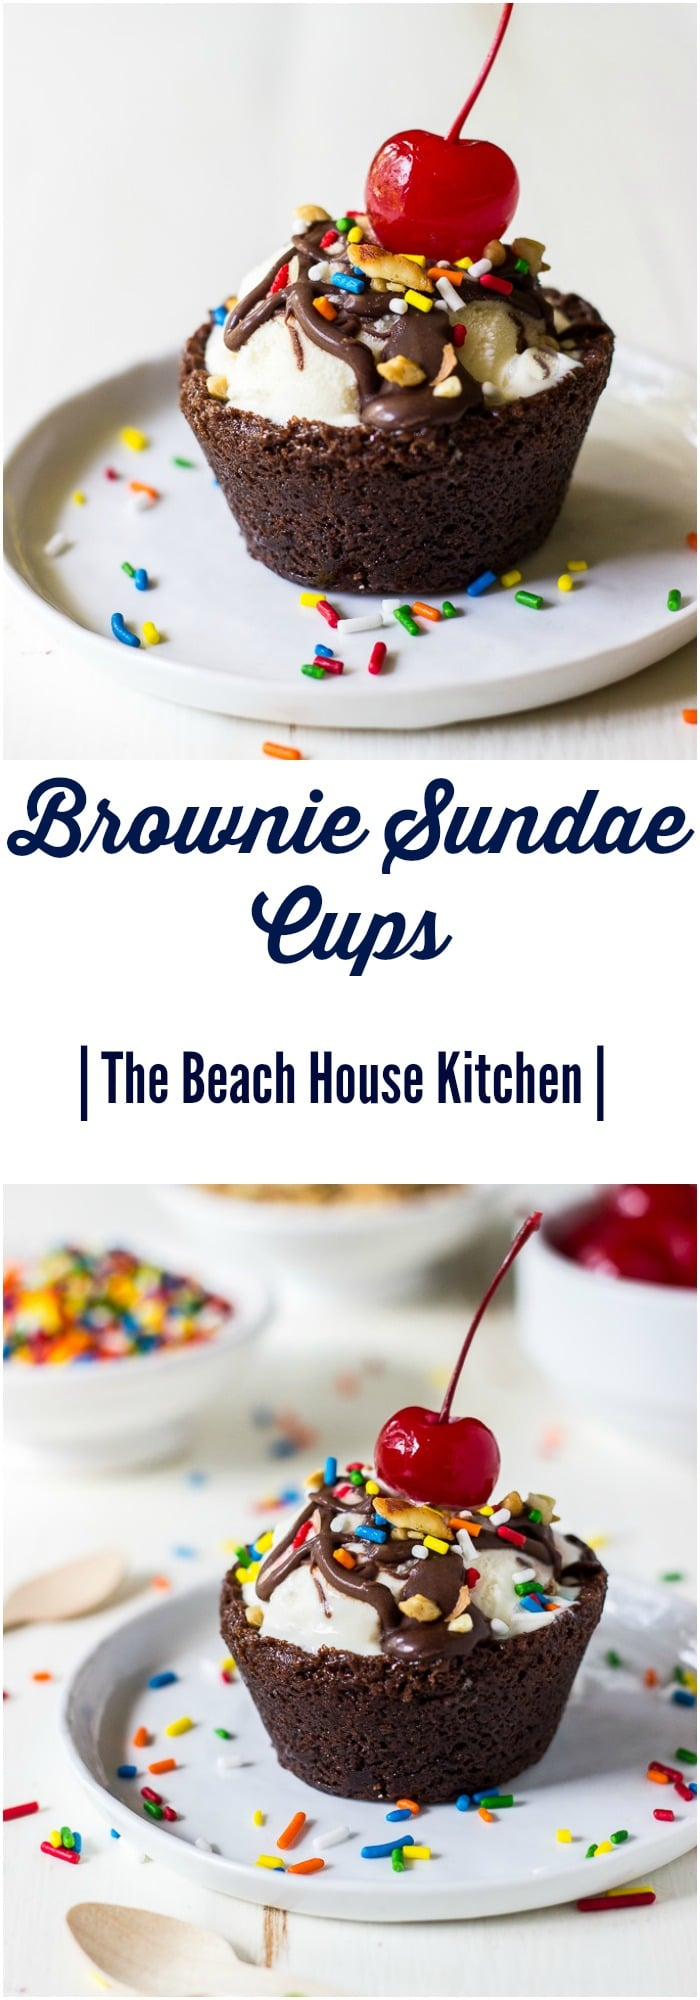 Brownie Sundae Cups